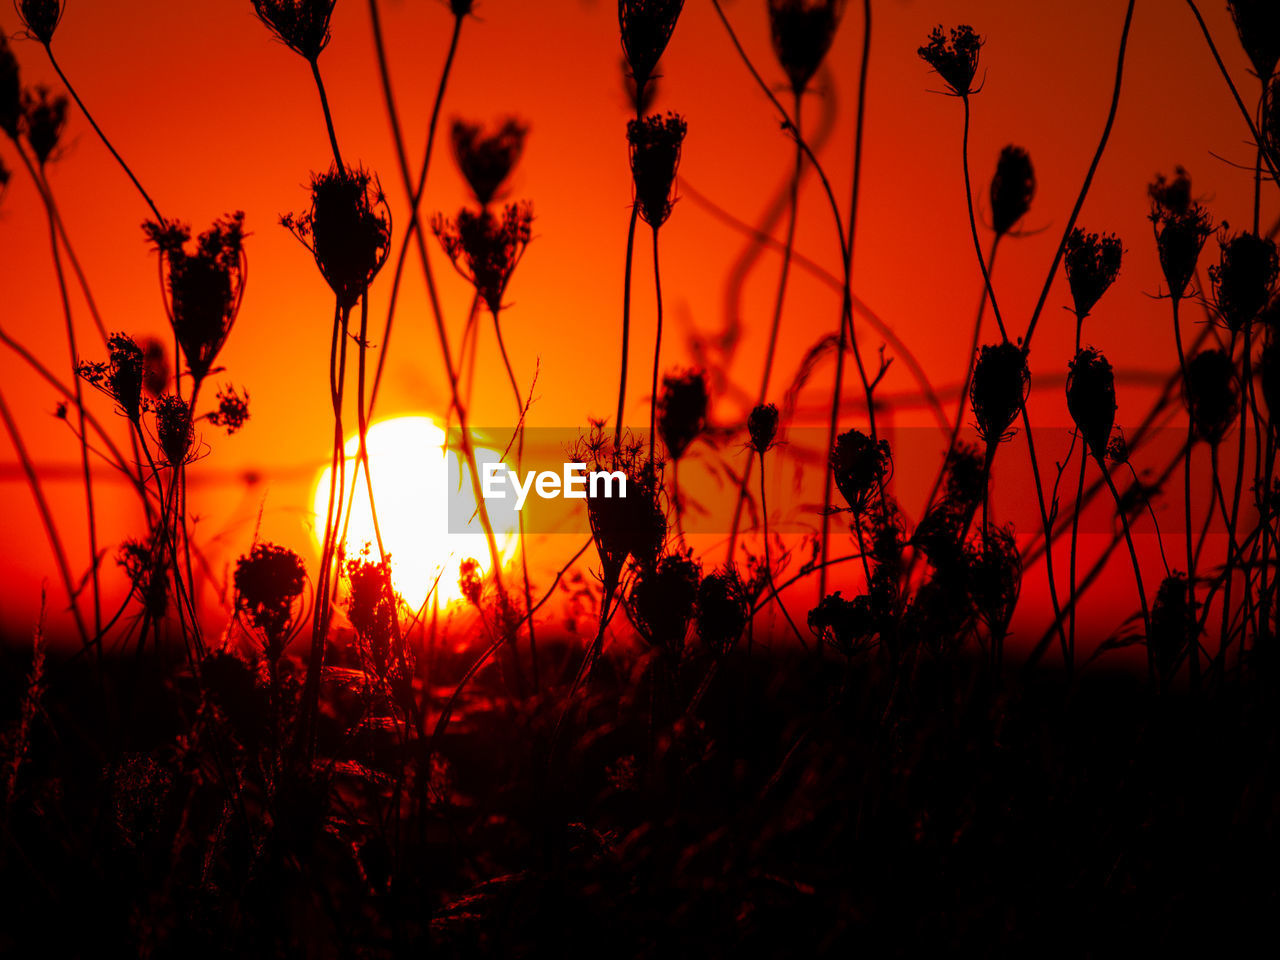 sunset, beauty in nature, plant, sky, growth, silhouette, orange color, tranquility, no people, nature, land, flowering plant, field, scenics - nature, tranquil scene, flower, sun, close-up, outdoors, fragility